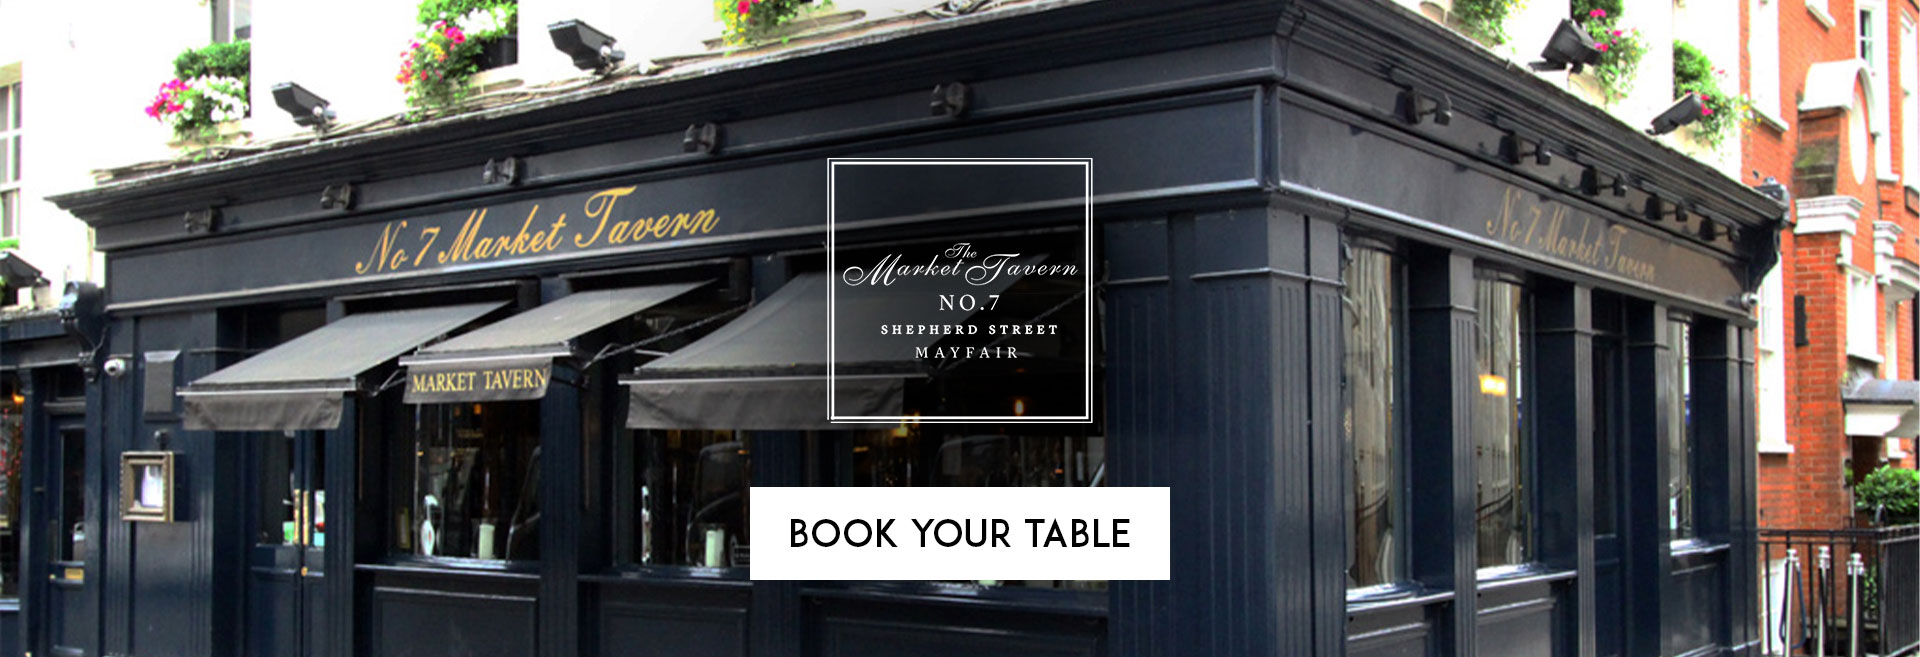 Book Your Table The Market Tavern